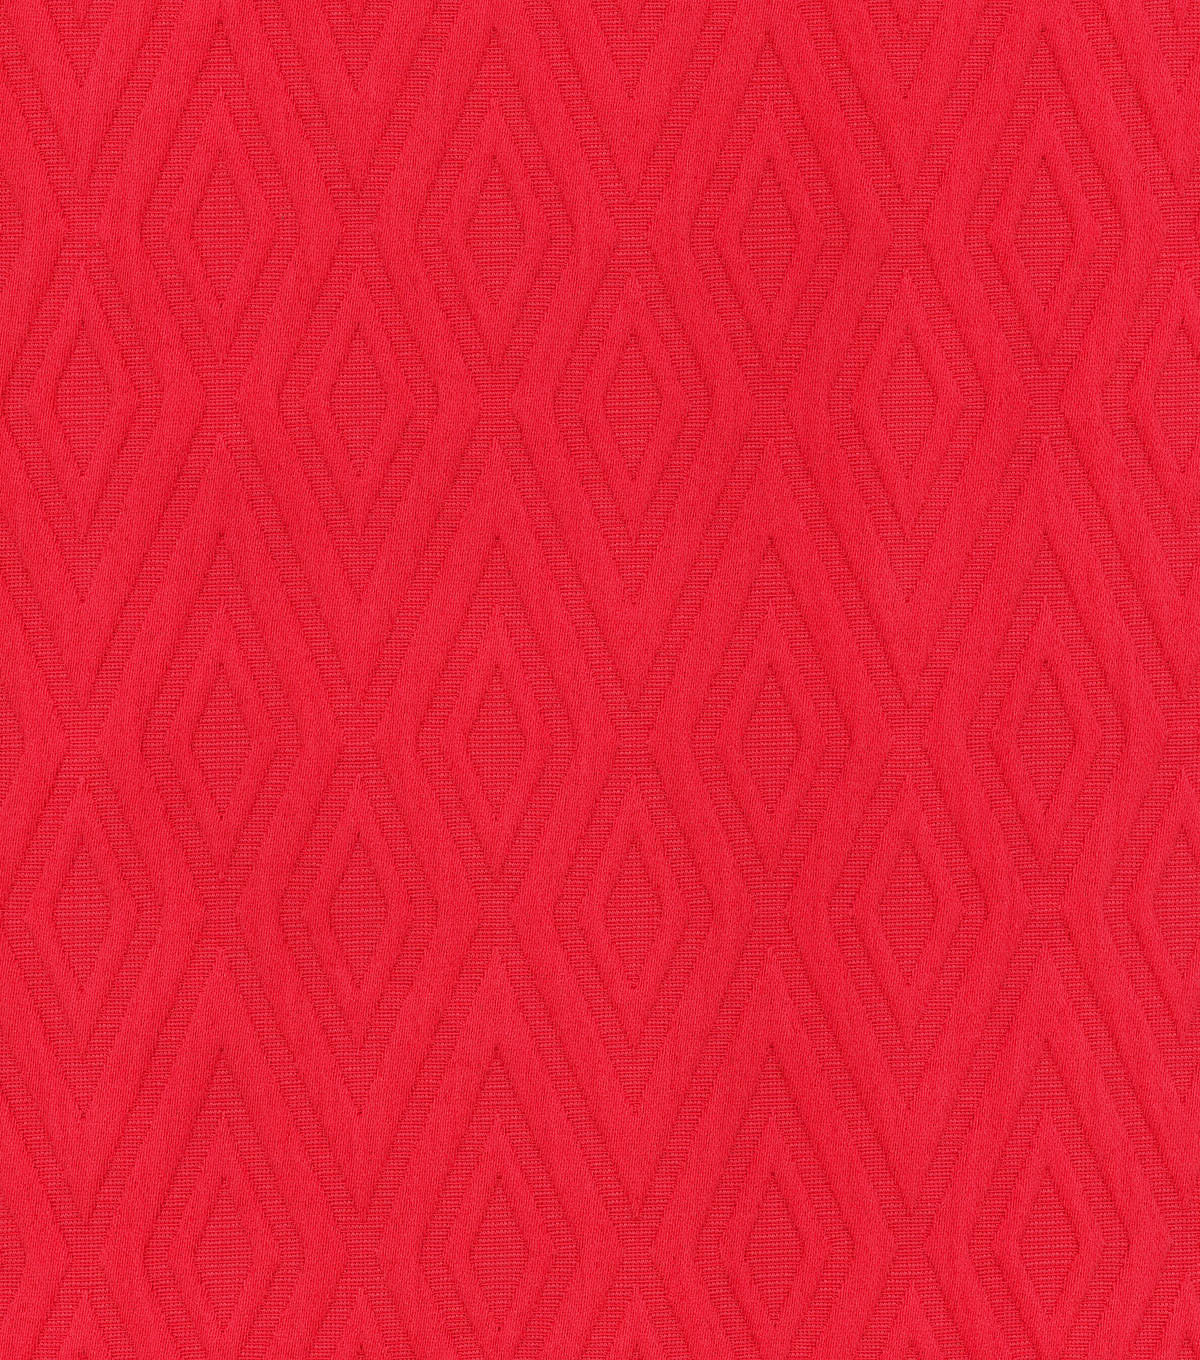 Waverly Solid Fabric 57\u0022-Fantastical/Scarlet